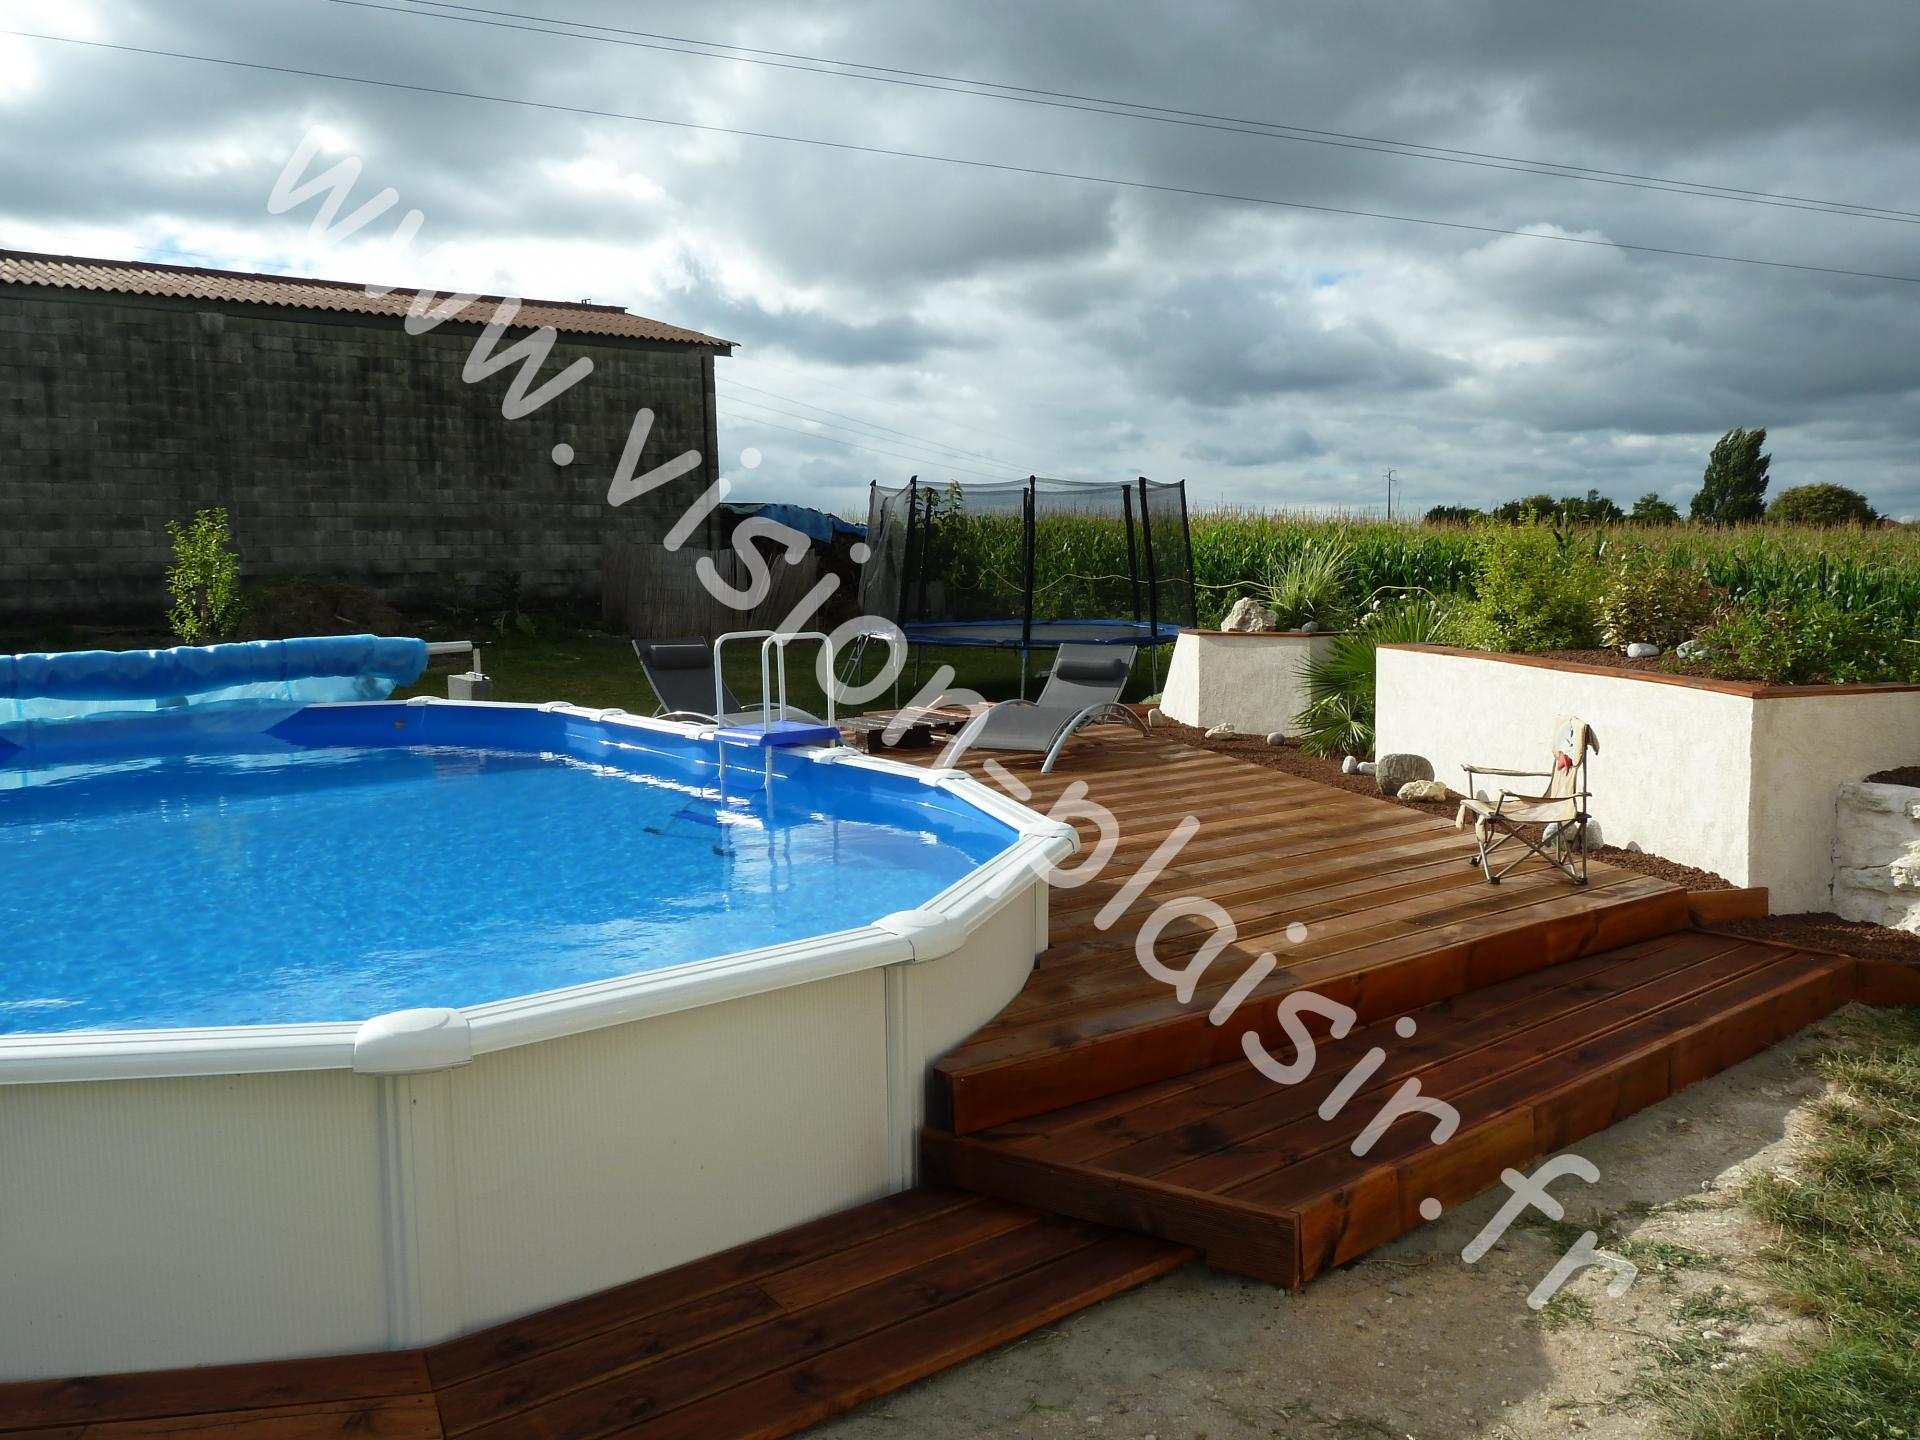 Blog de vision plaisir piscine hors sol semi enterr e for Piscine semi enterree acier